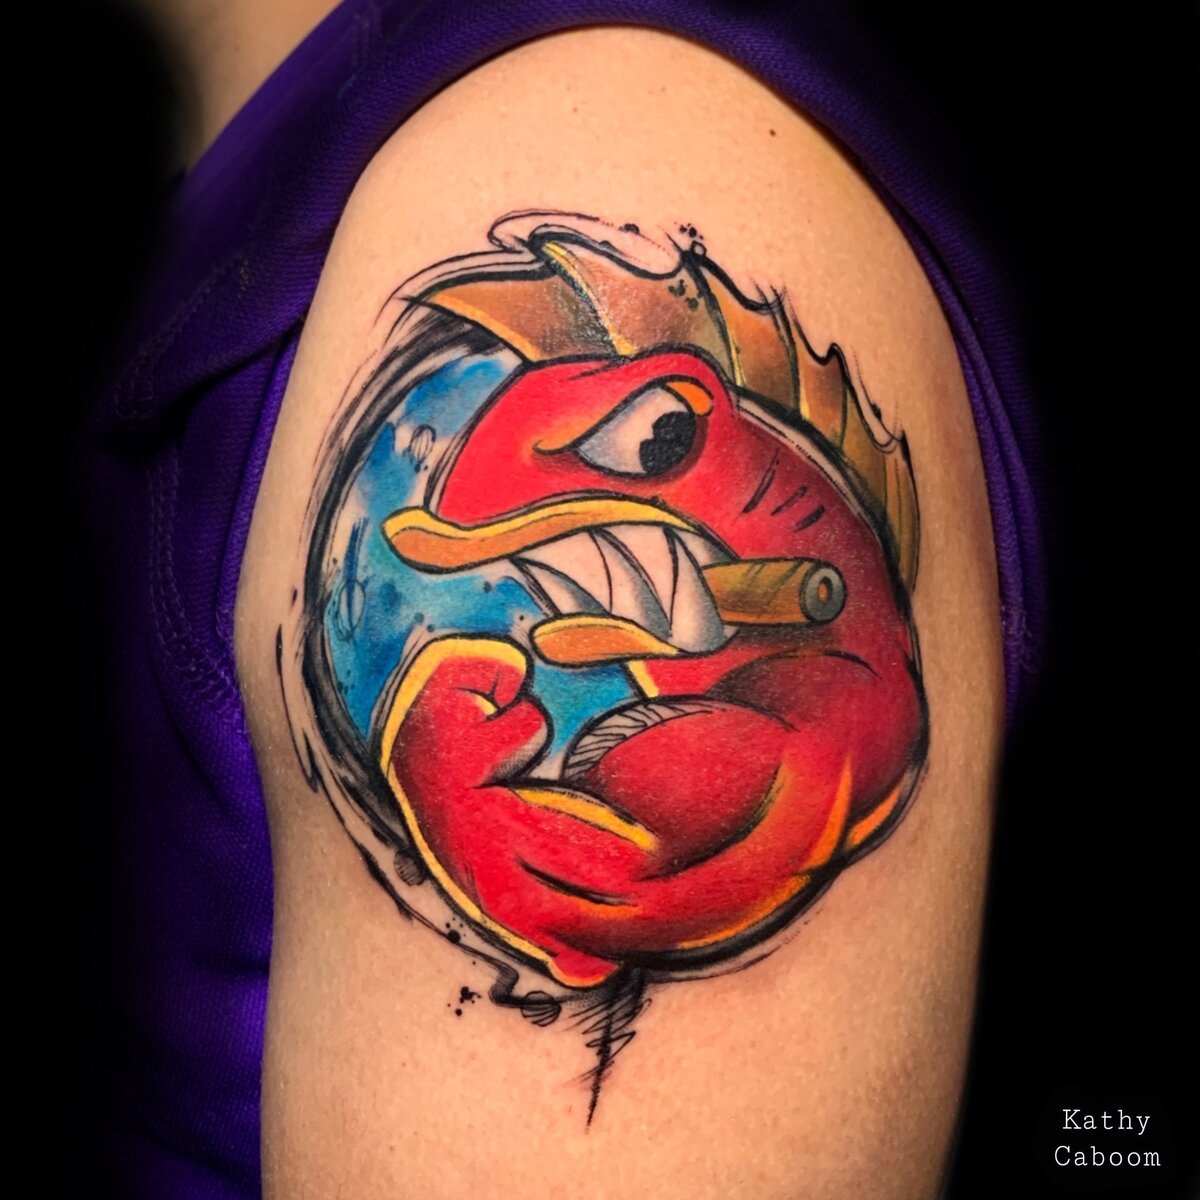 kathycaboom-tattoo-artist-red-fish